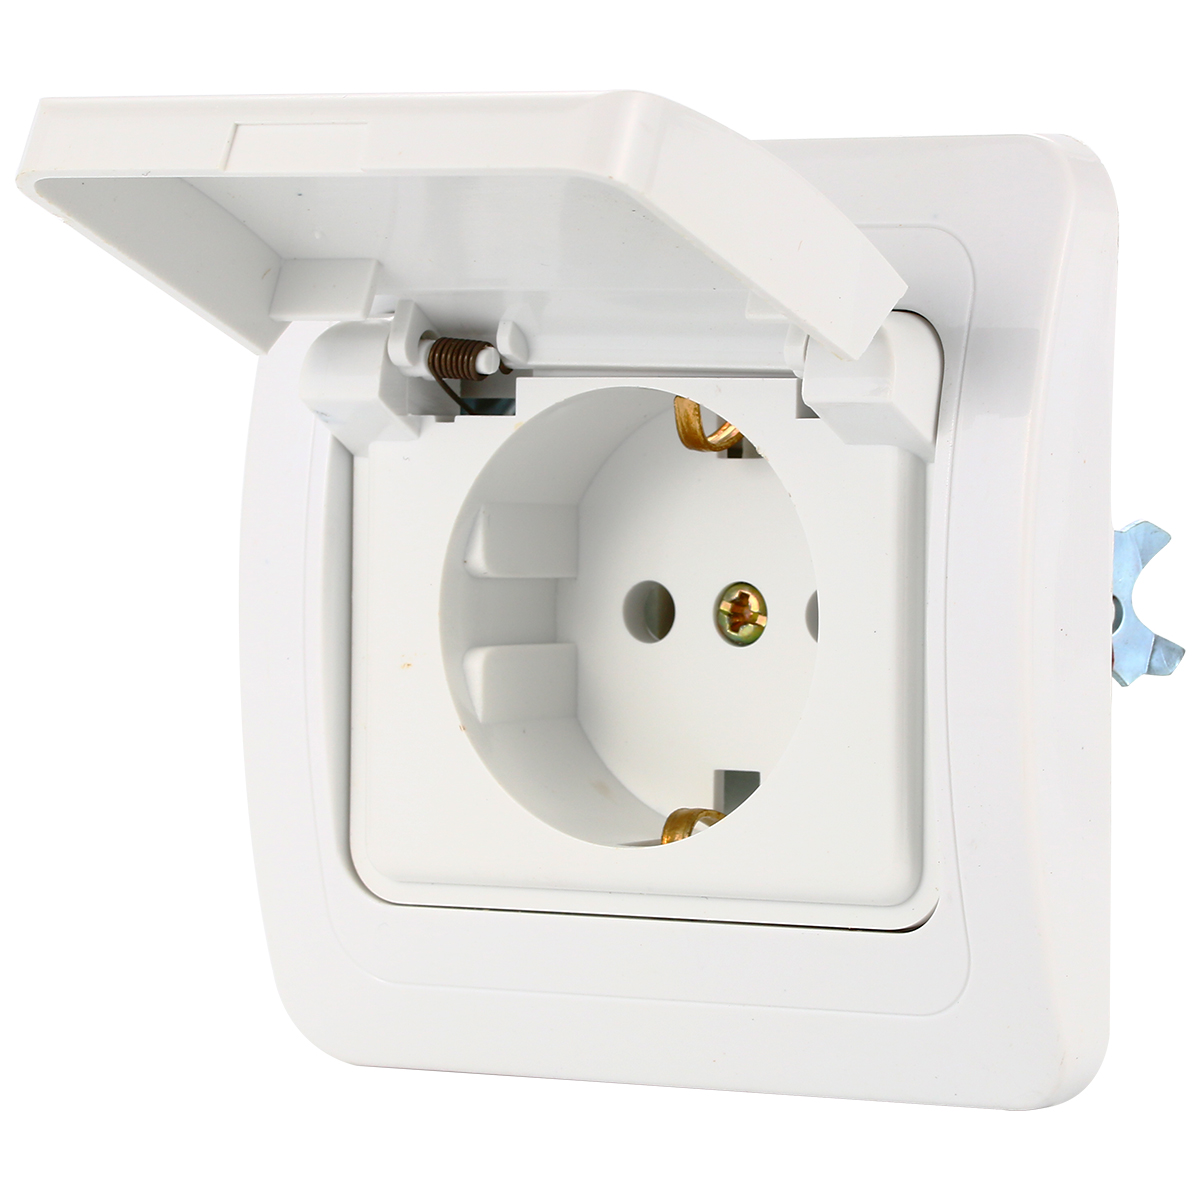 16a 250v korea wiring receptacle power outlet schuko germany16a 250v korea wiring receptacle power outlet schuko [ 1200 x 1200 Pixel ]